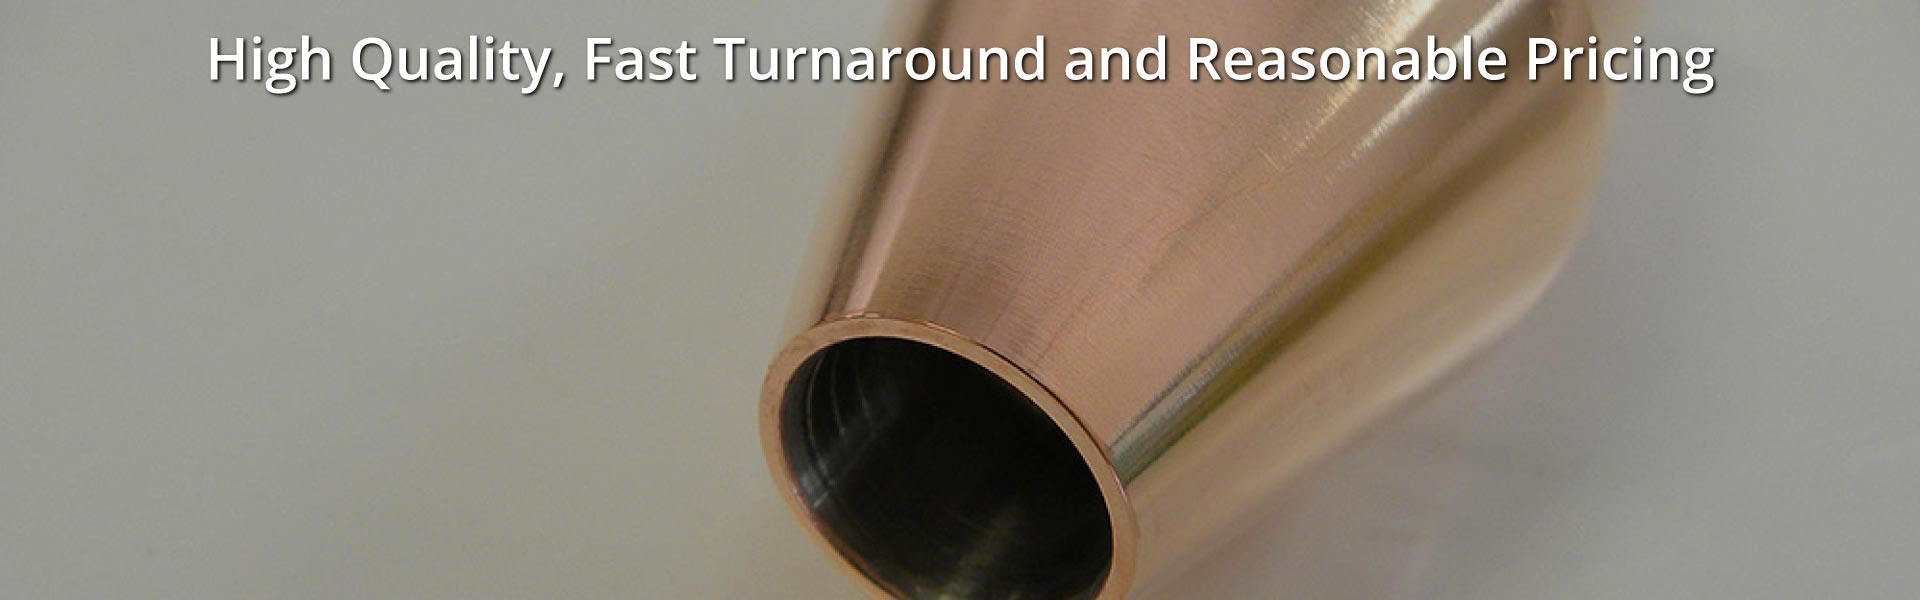 High Quality, Fast Turnaround and Reasonable Pricing | Copper plated metal